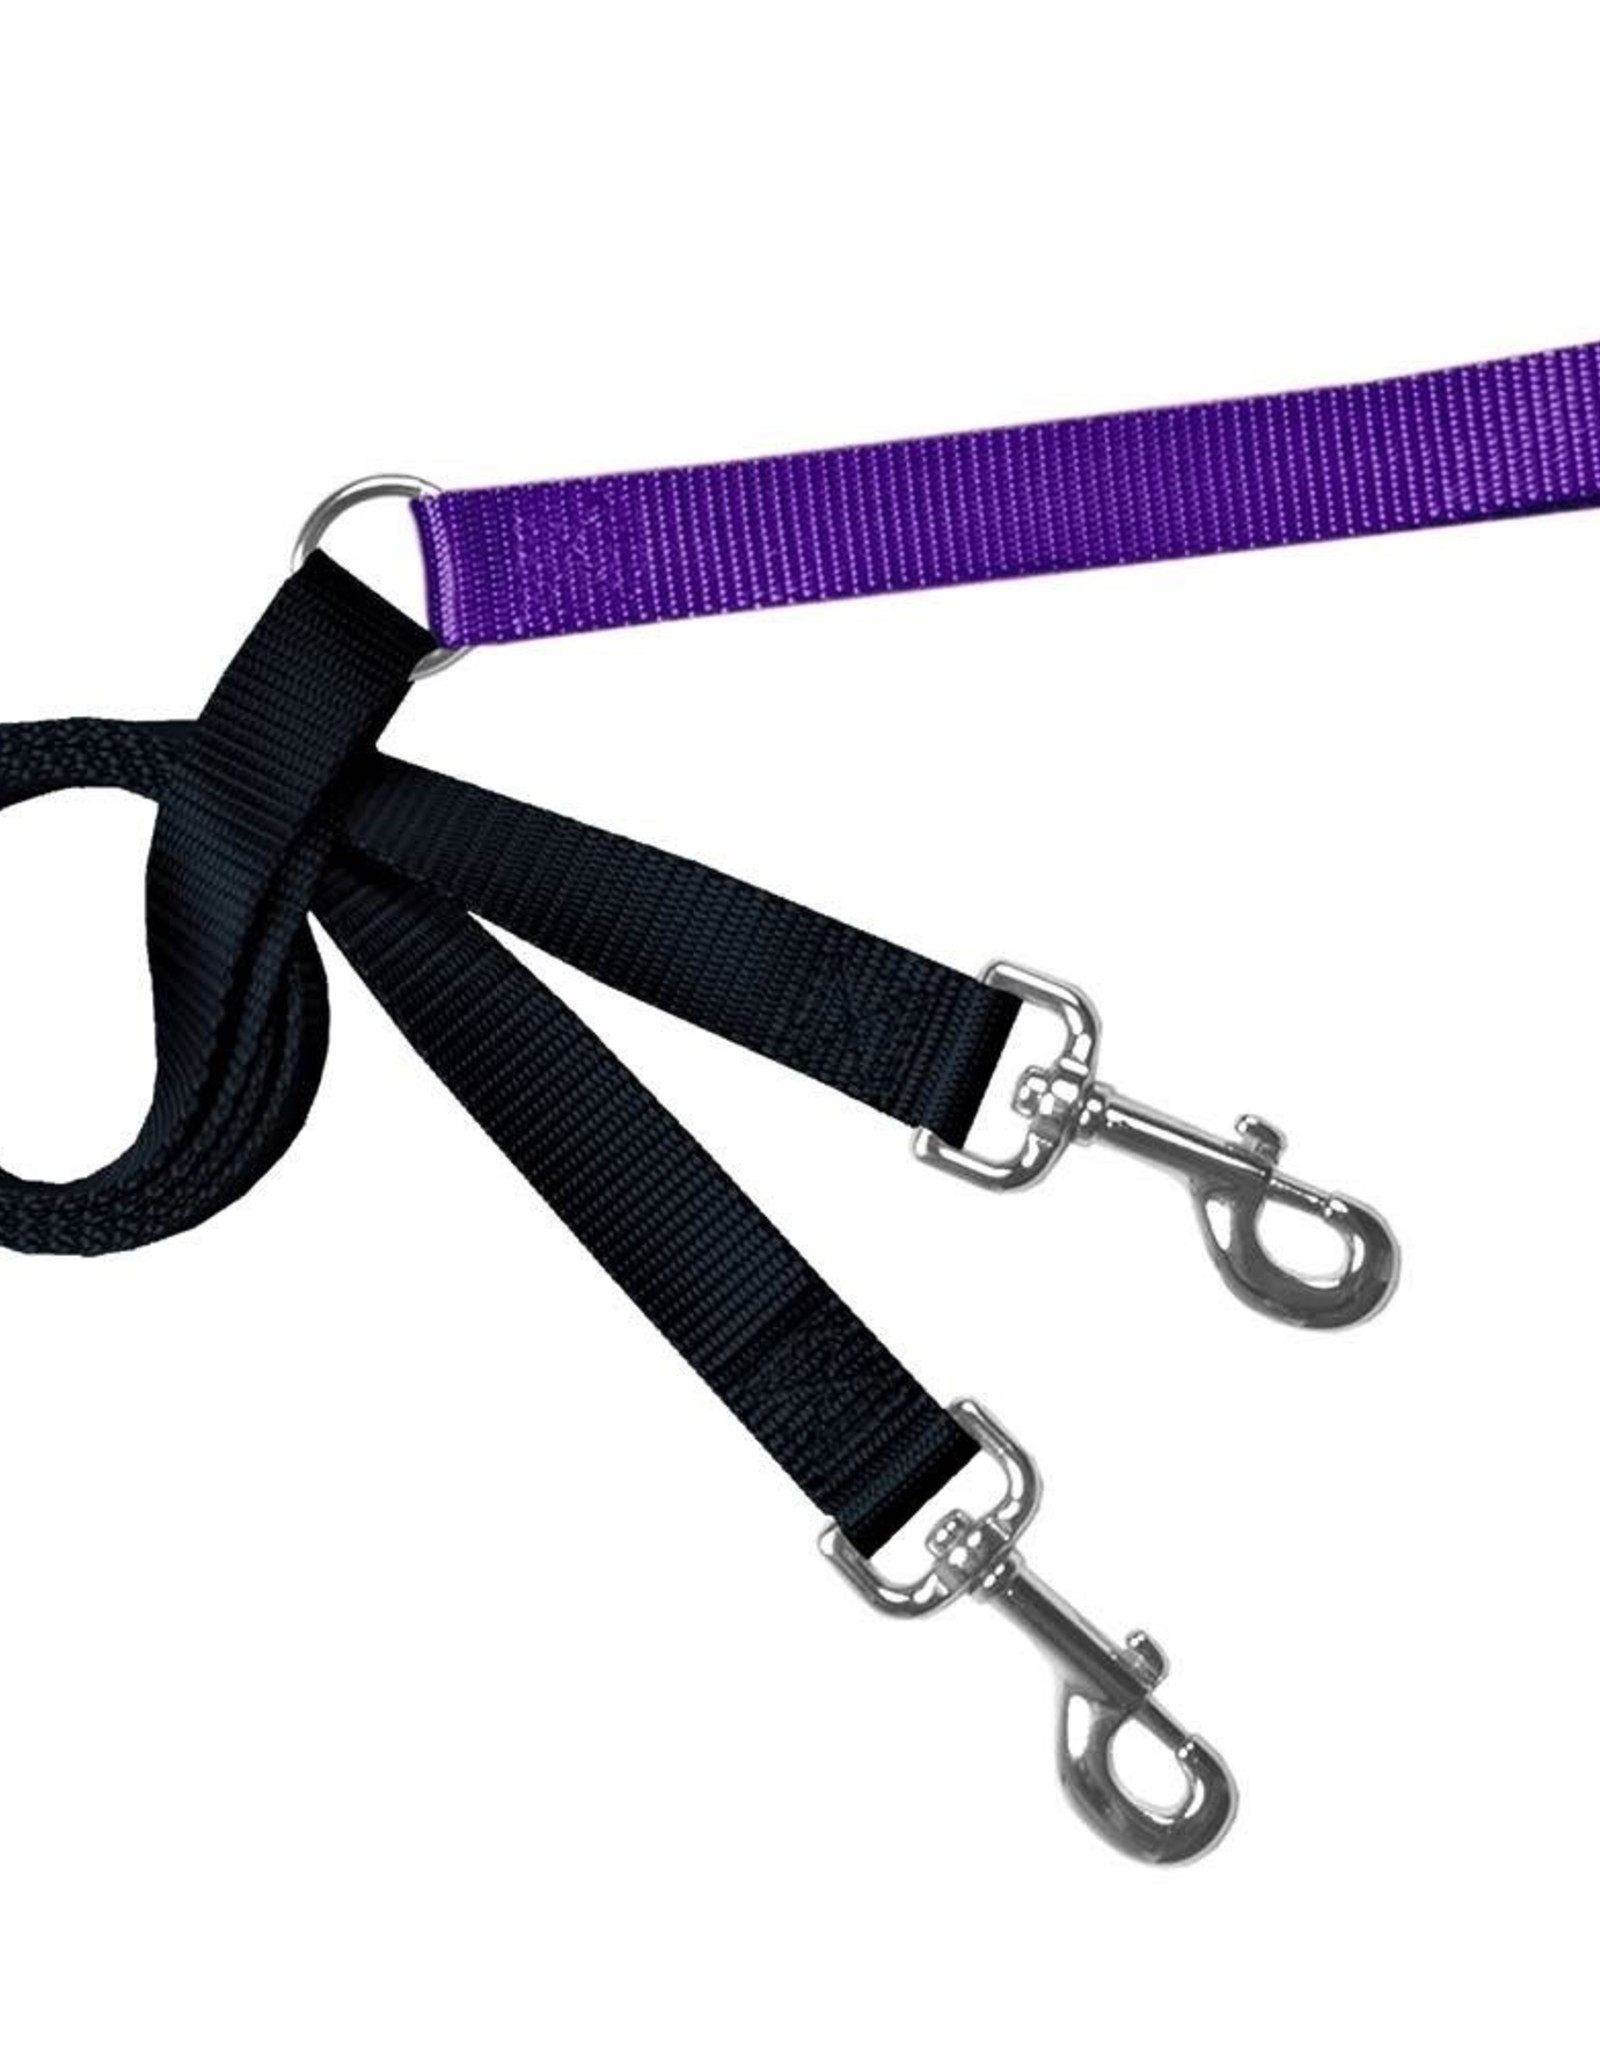 "2 Hounds Design 1"" Freedom Harness and Leash - Purple"